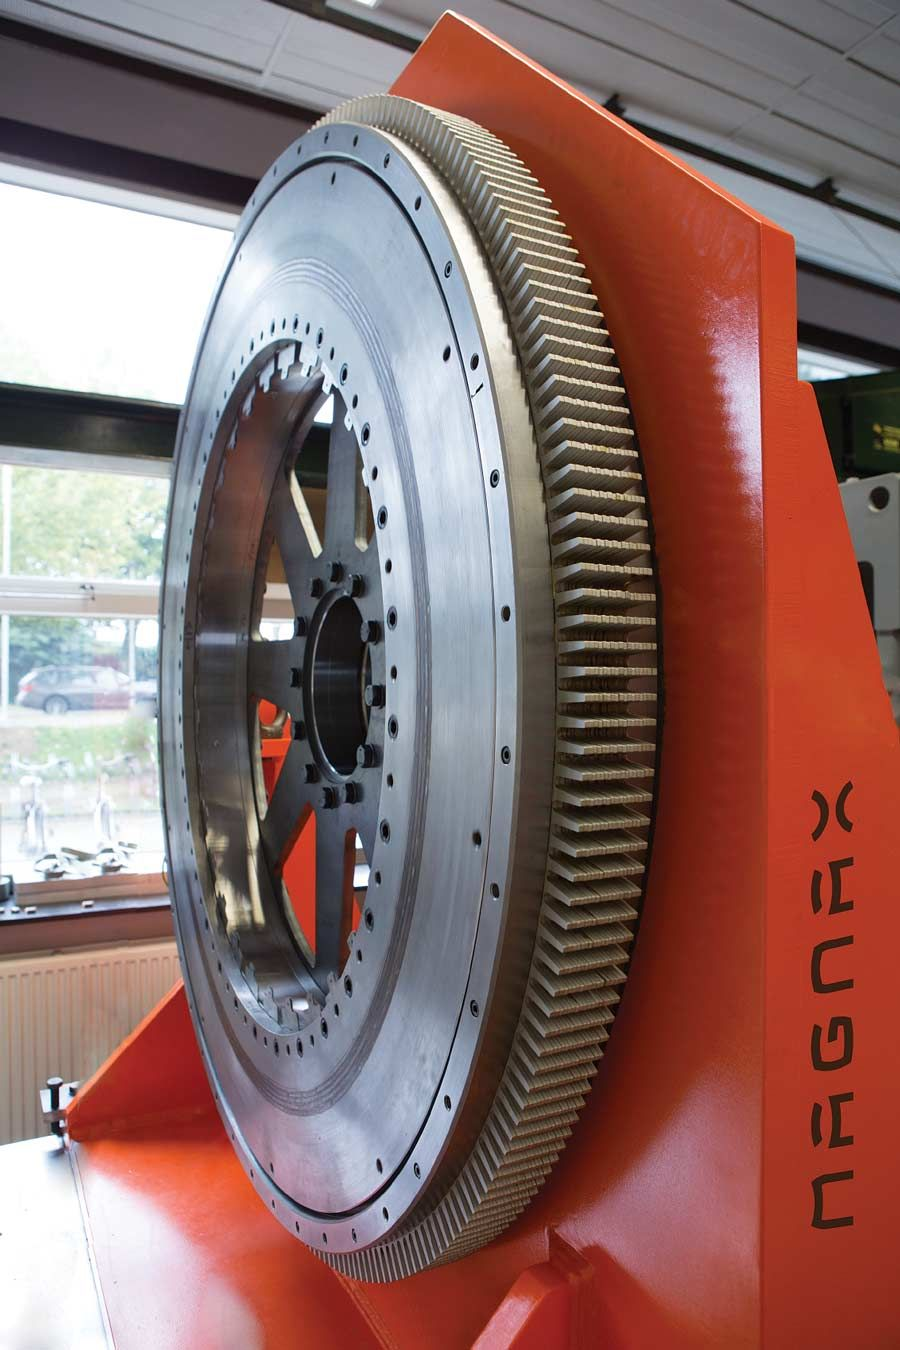 This large prototype shows the flat shape of the axial-flux design.